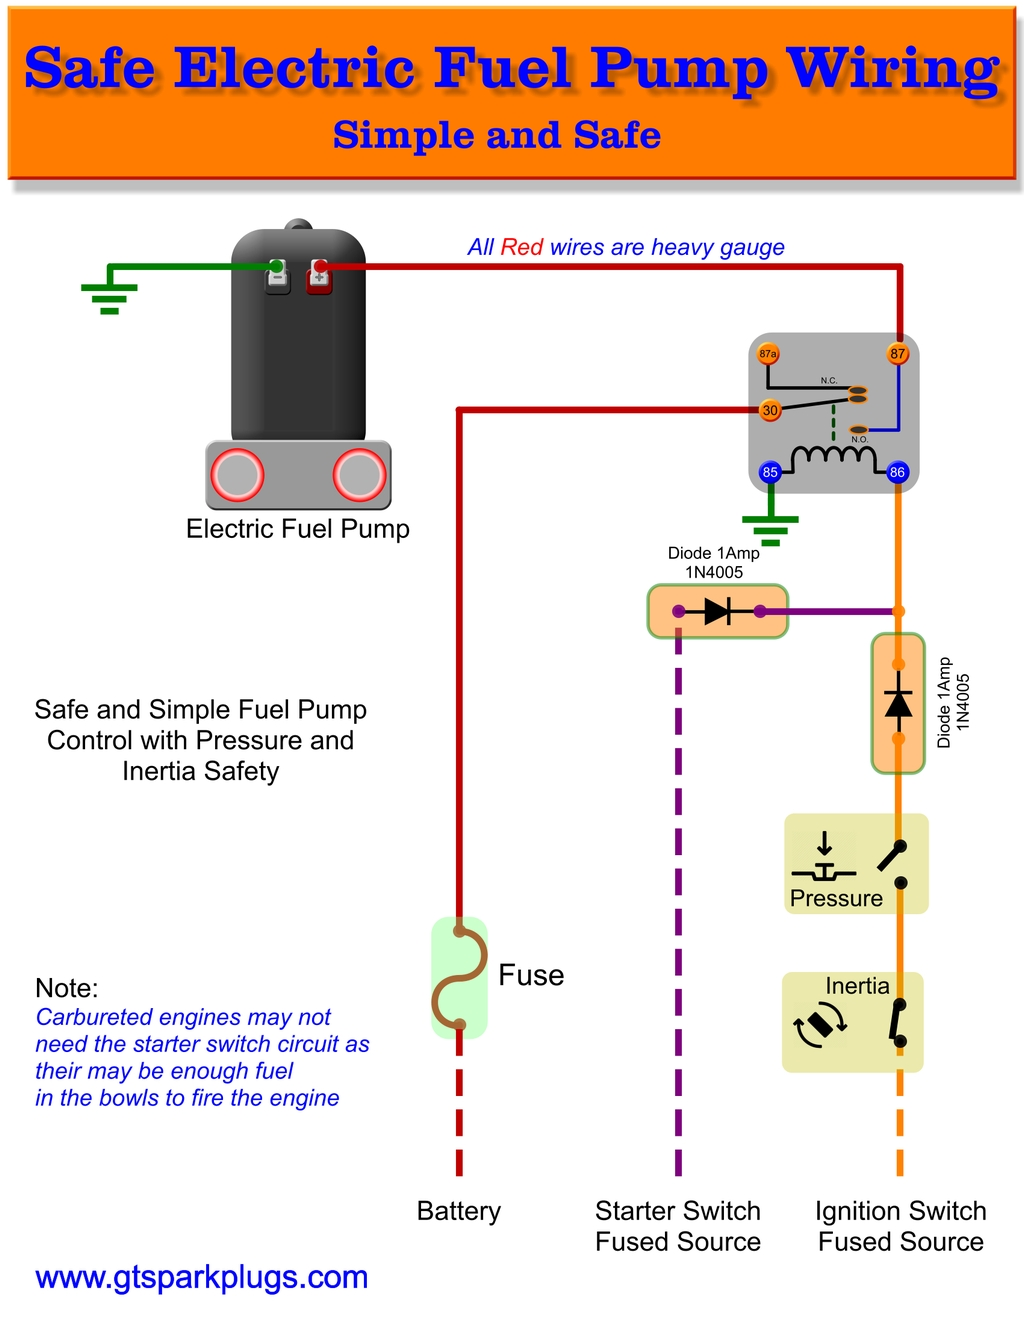 Electric Fuel Pump Wiring Diagram Gtsparkplugs Diode Basic Safe